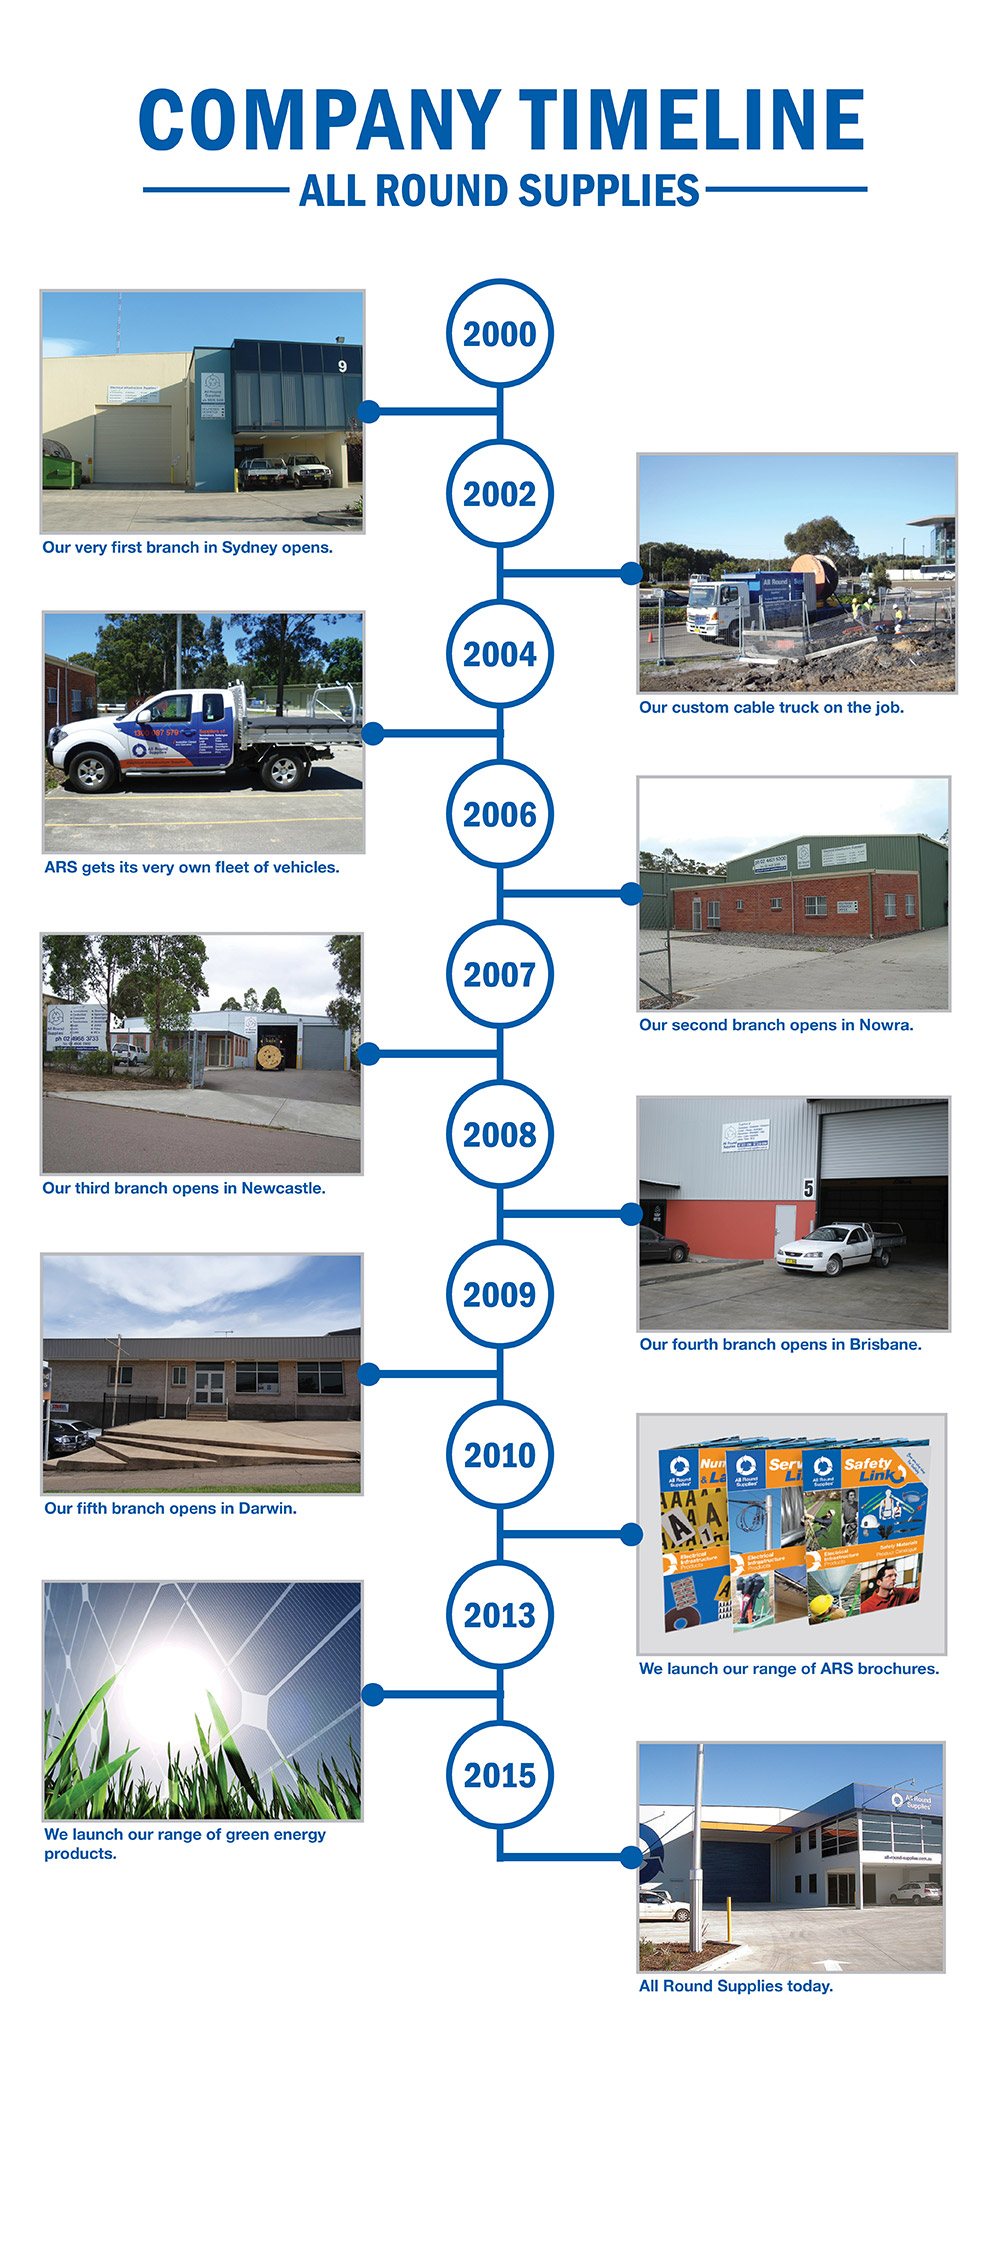 All Round Supplies company timeline